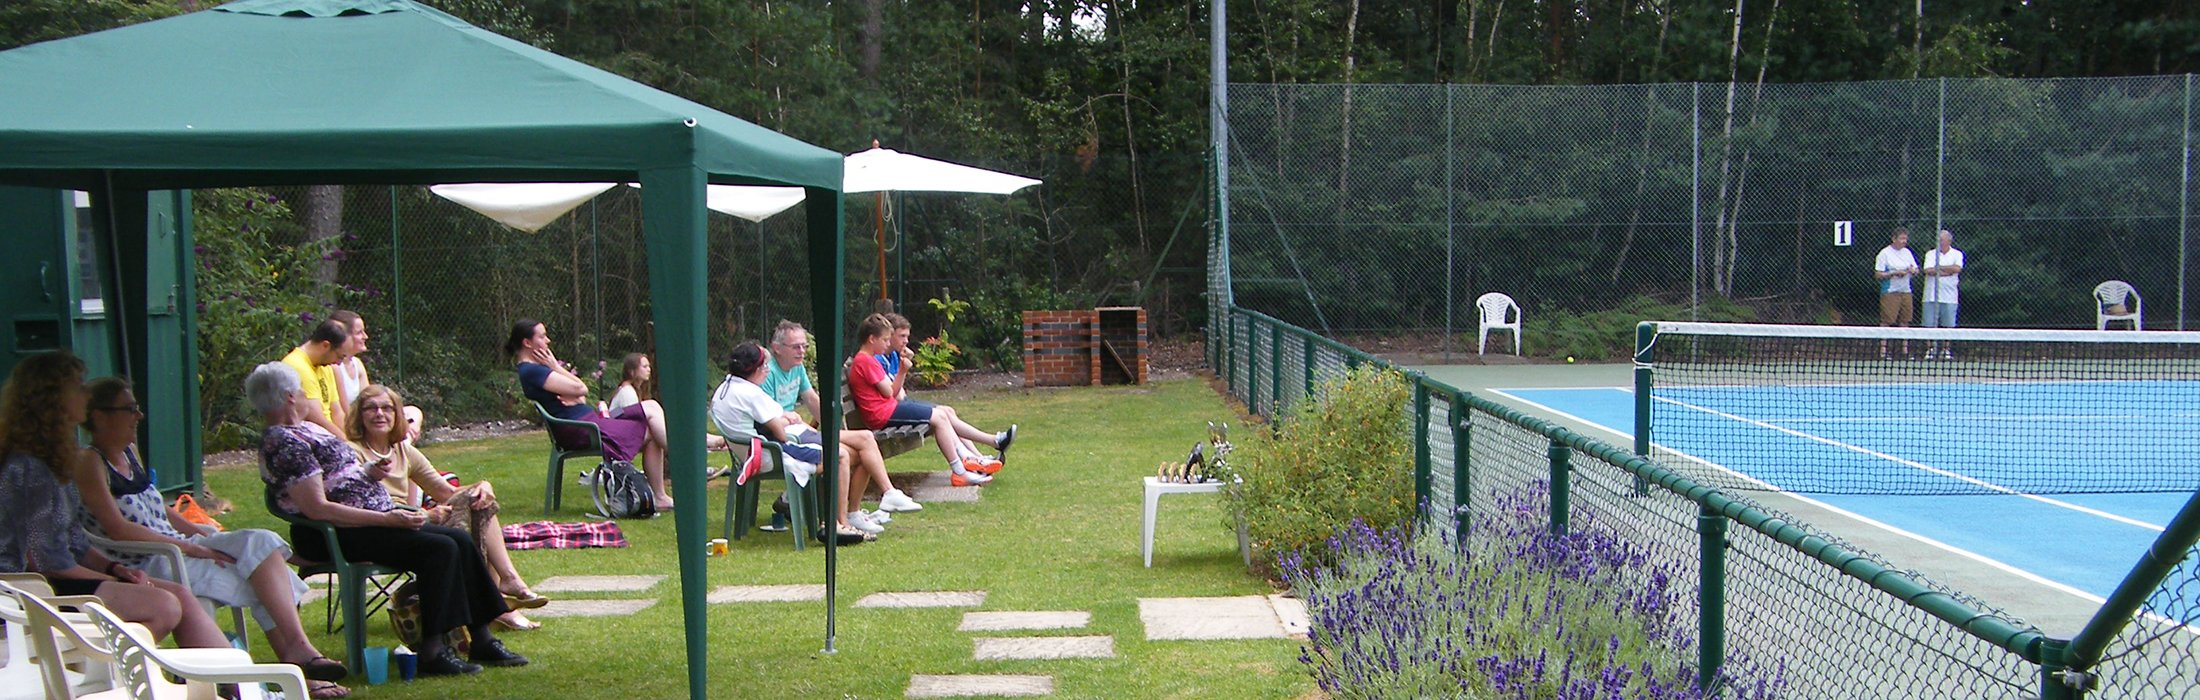 Members enjoing the Finals Day at Crowthorne Tennis Club